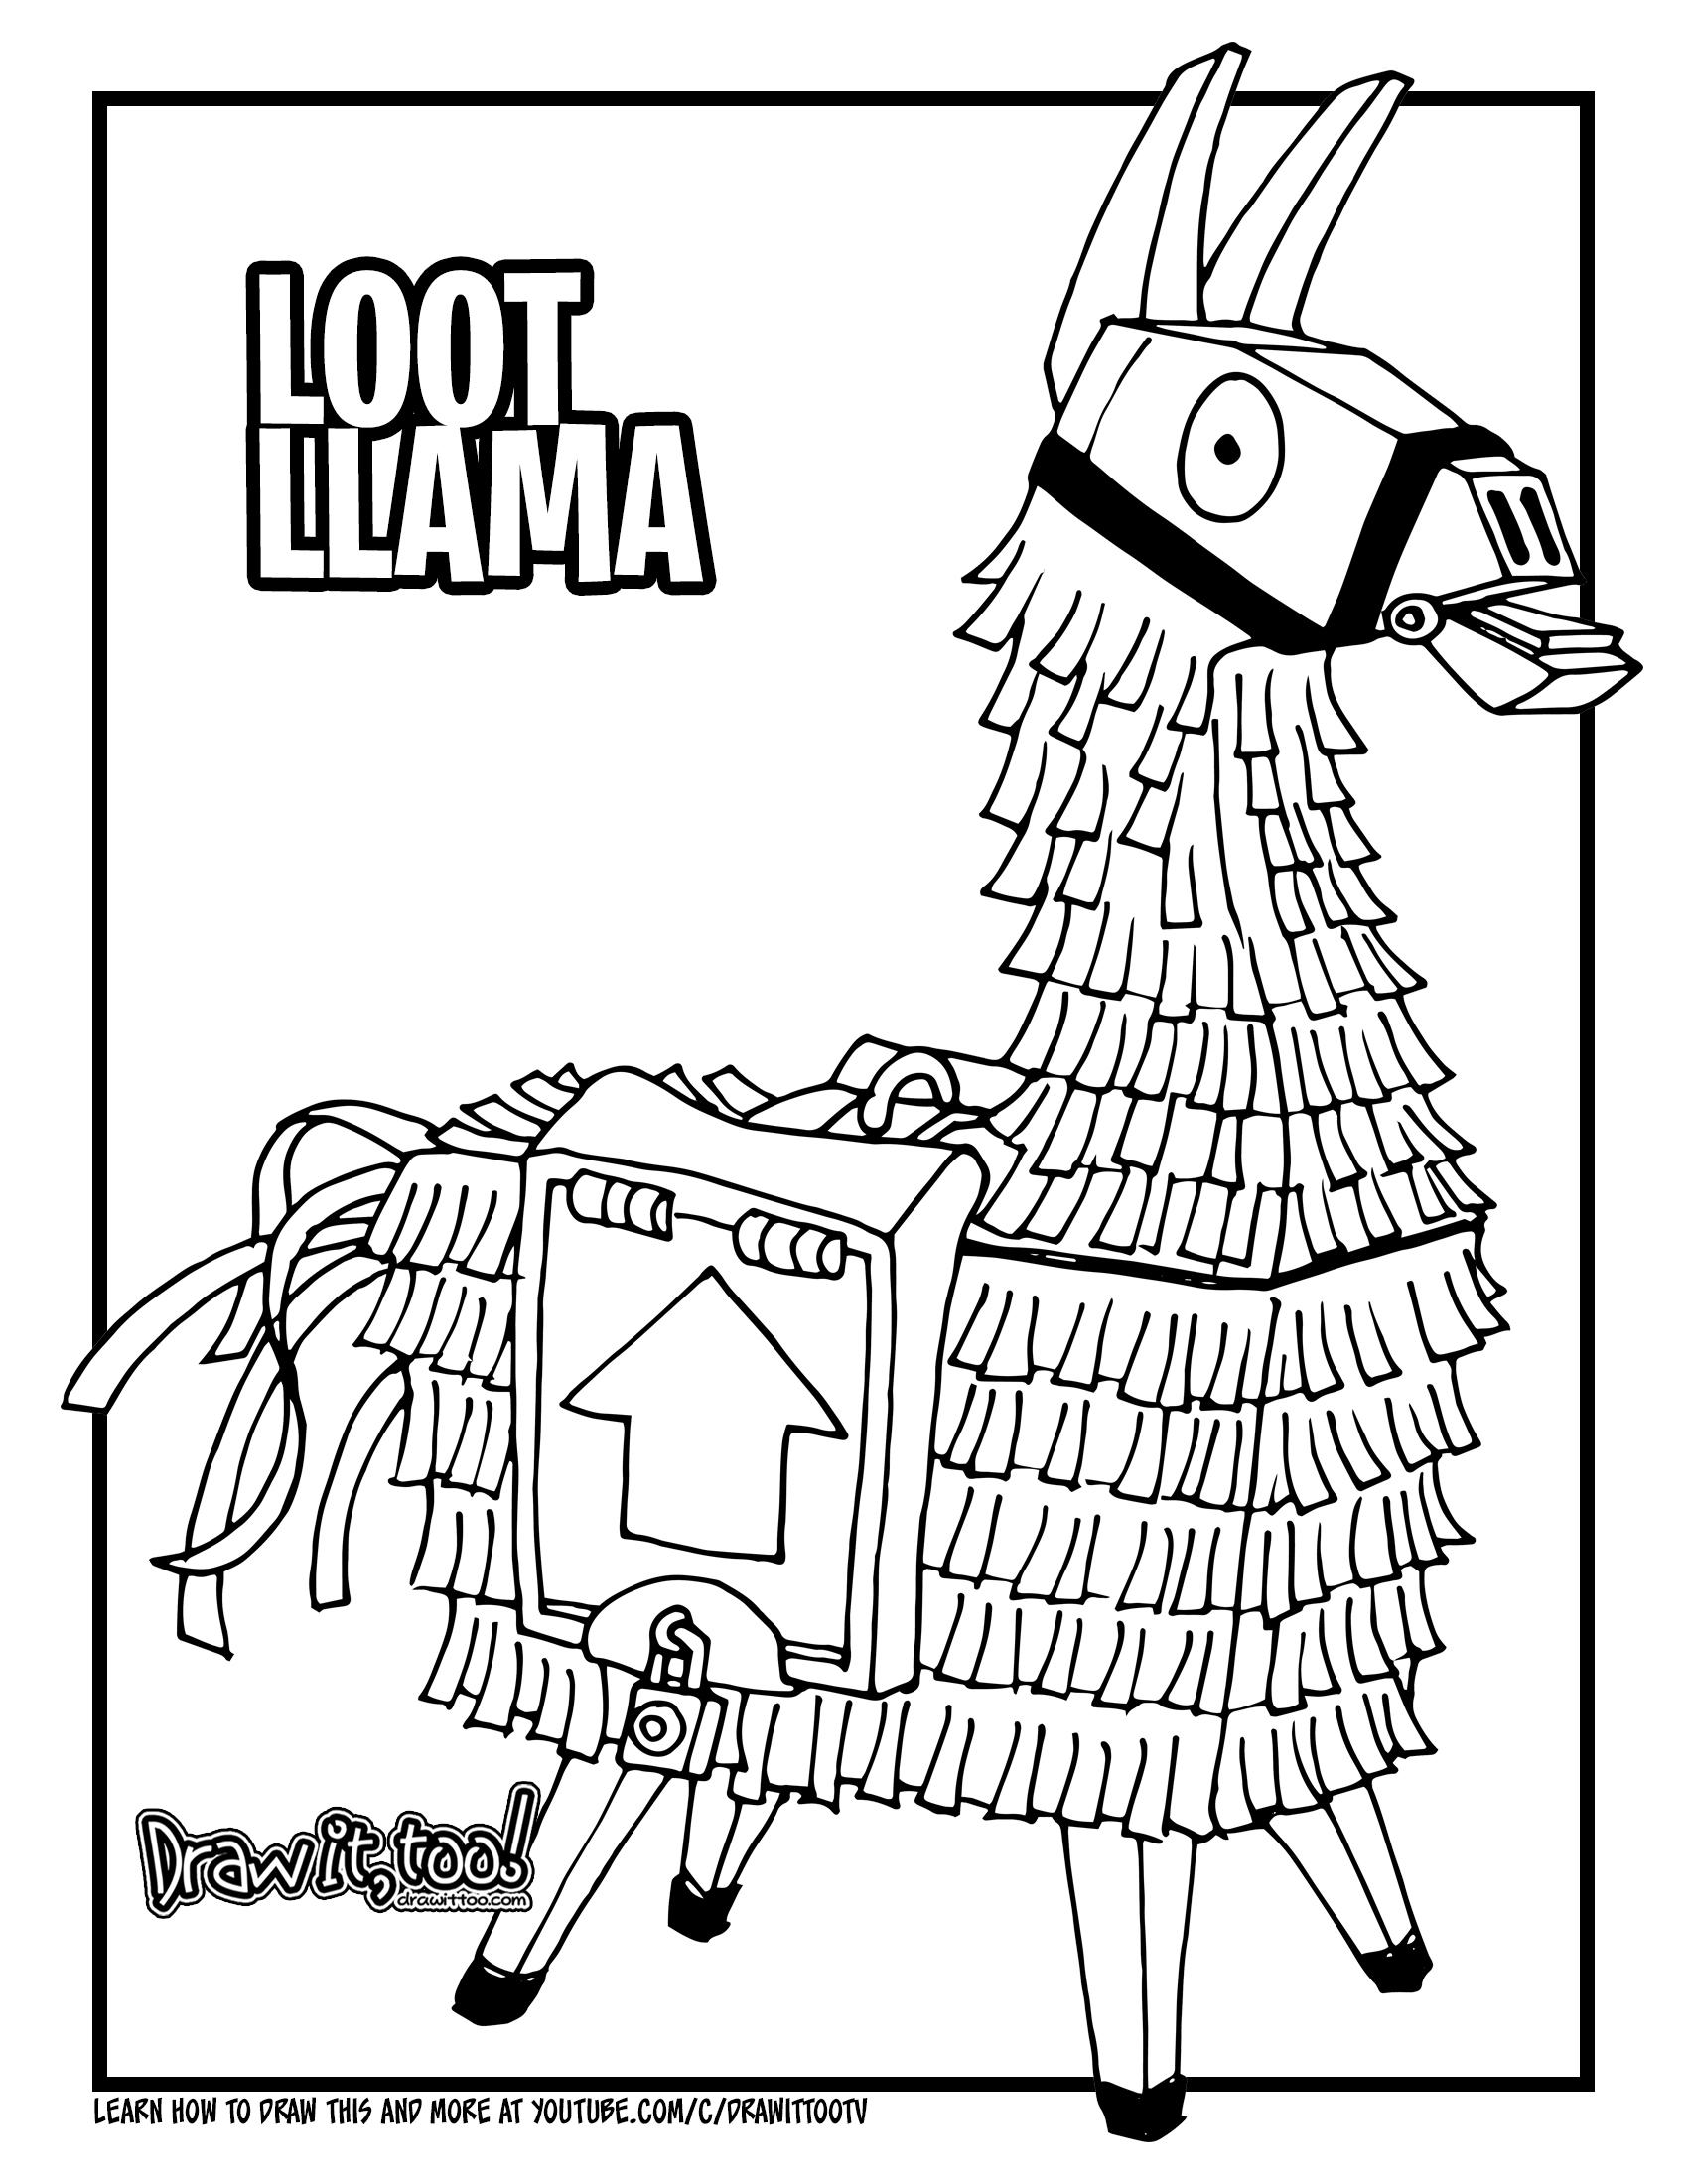 How to Draw the LOOT LLAMA (Fortnite: Battle Royale